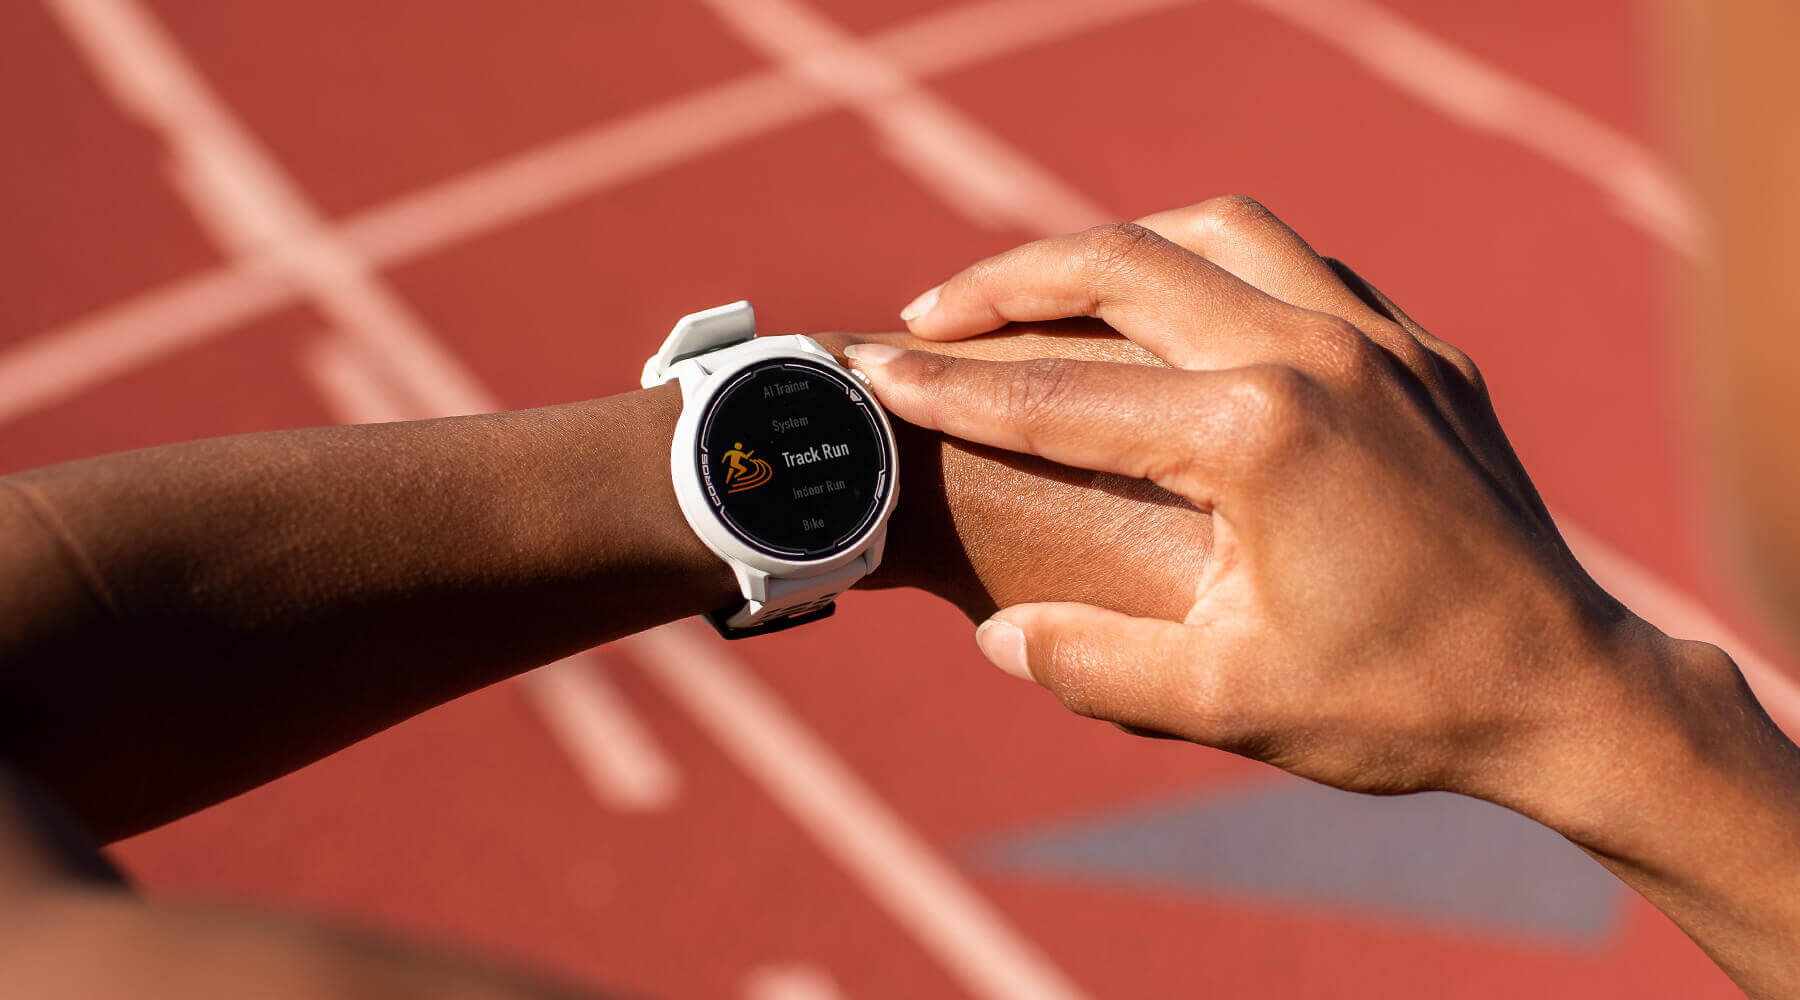 White running smartwatch on a woman's hand in front of a track field.